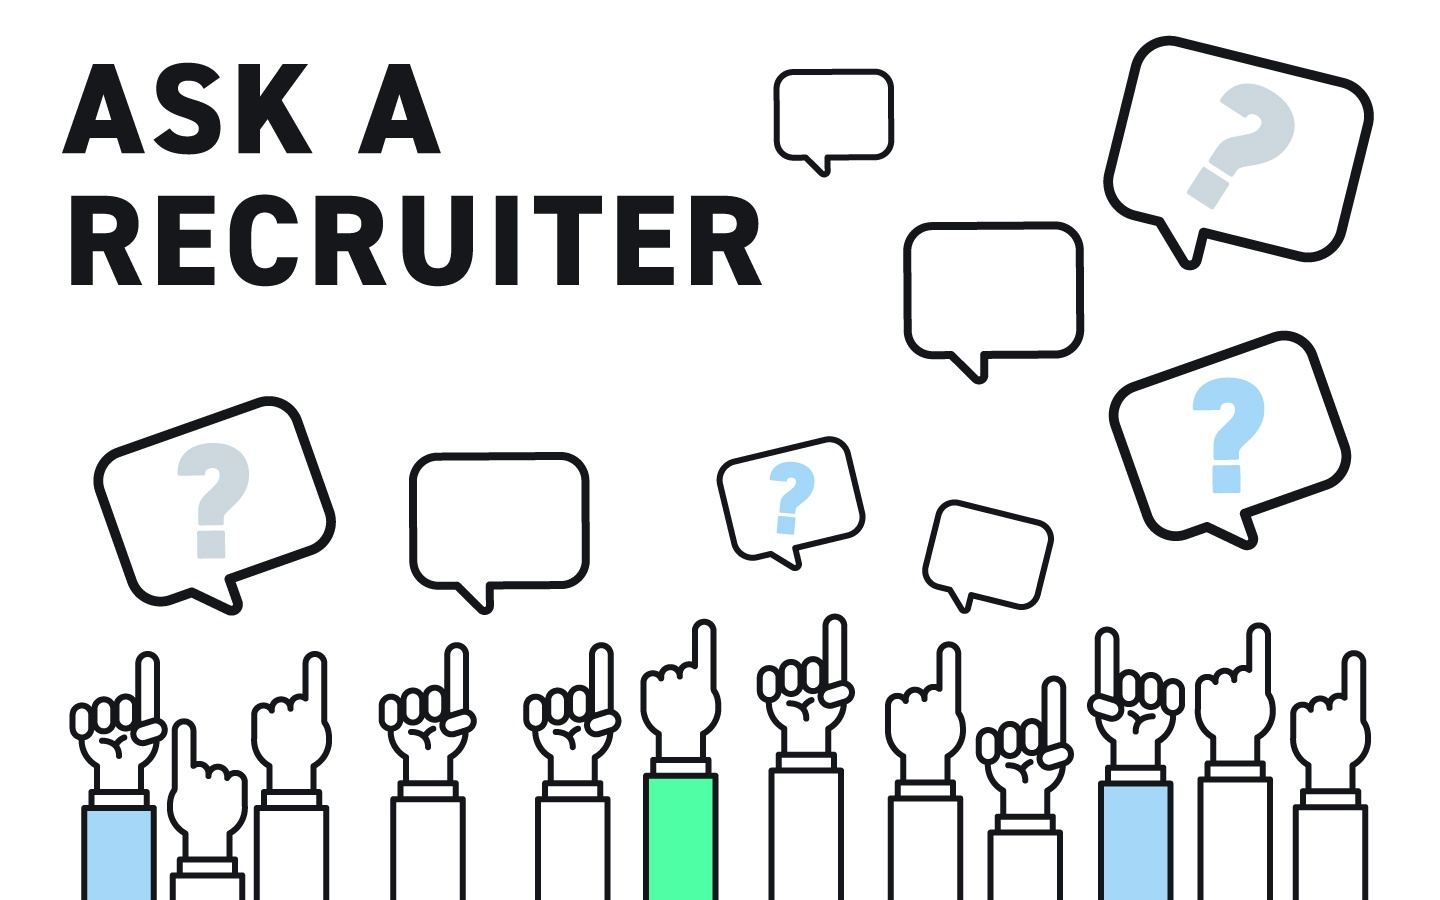 Ask a Recruiter Website Advice Section